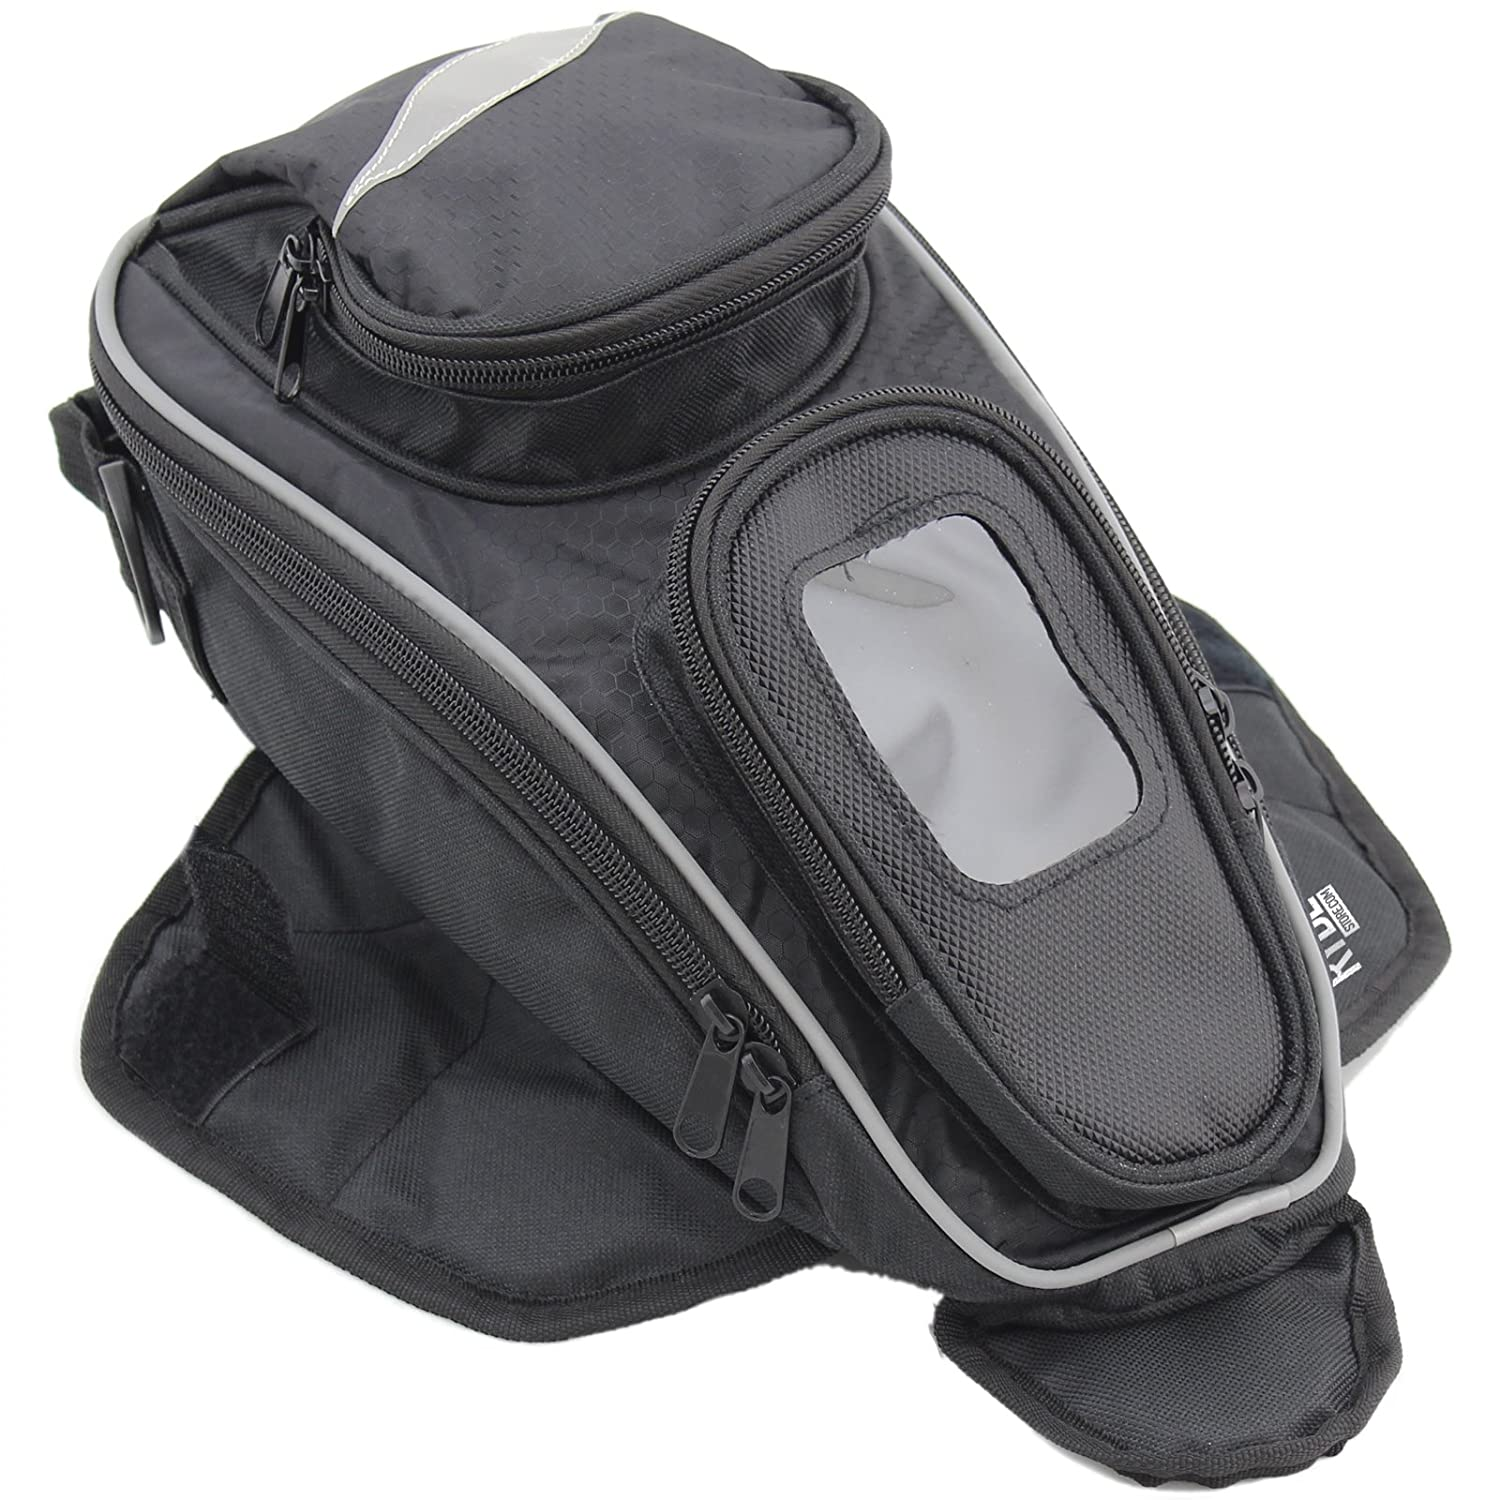 Ryde Aero Magnetic Motorcycle Tank Bag with GPS/Phone Pouch